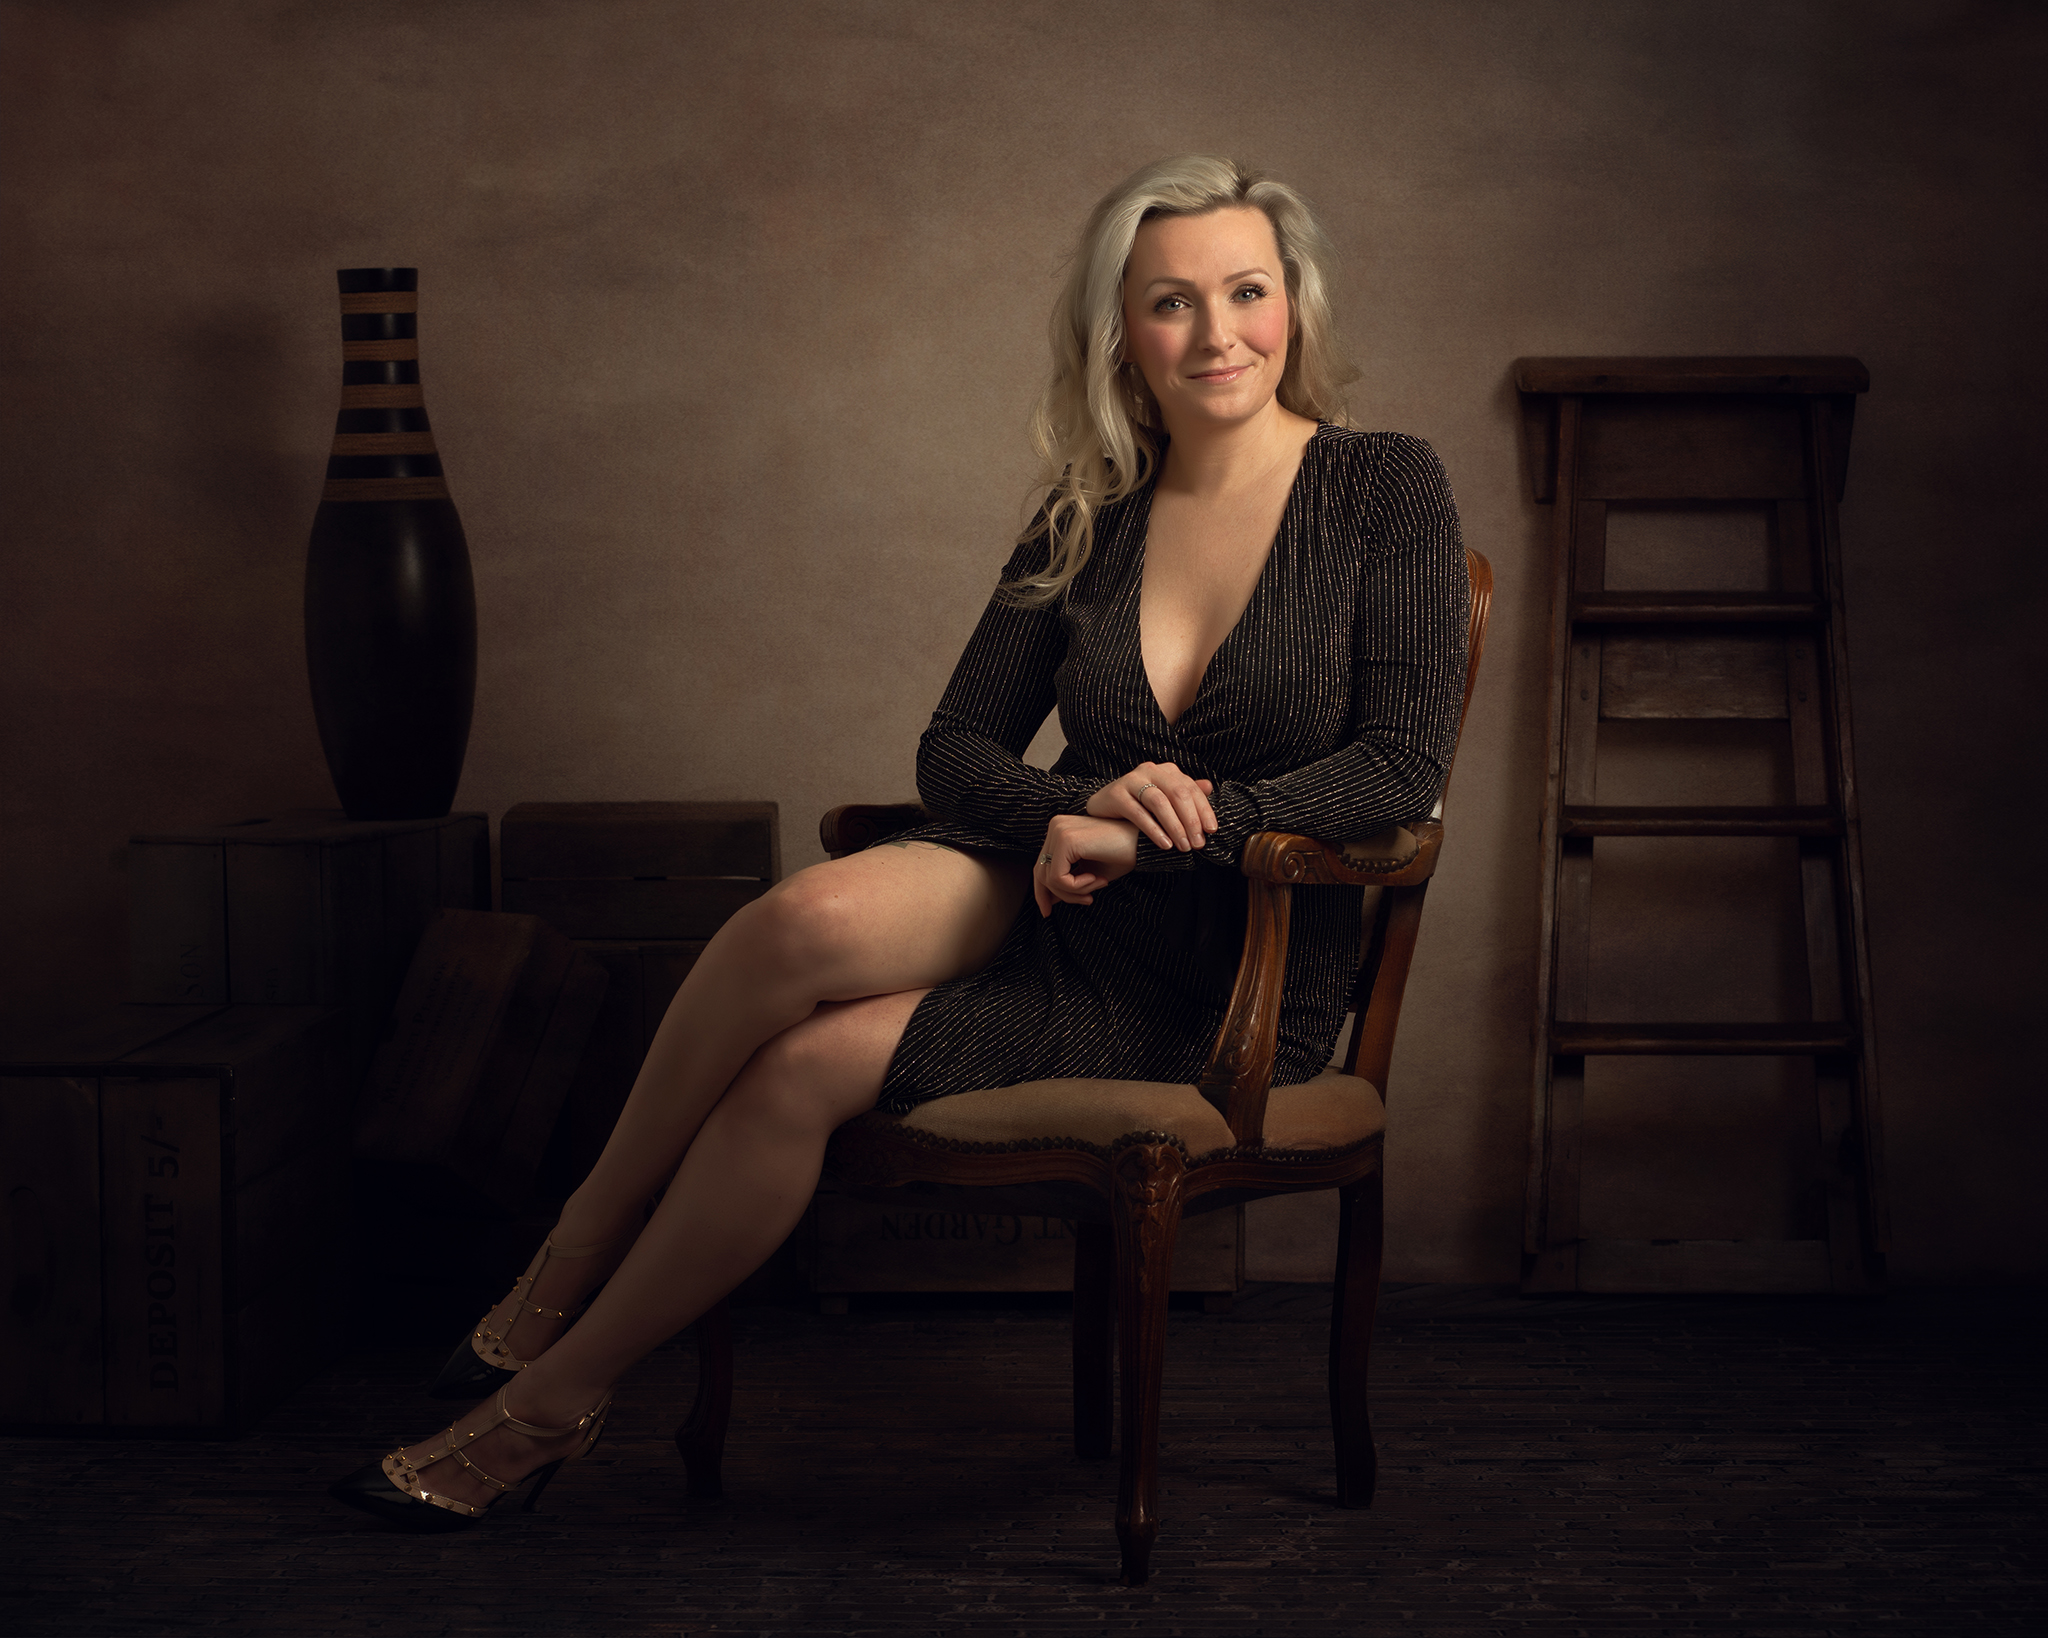 Blonde woman in professional business branding shoot by Portrait photographer Preston